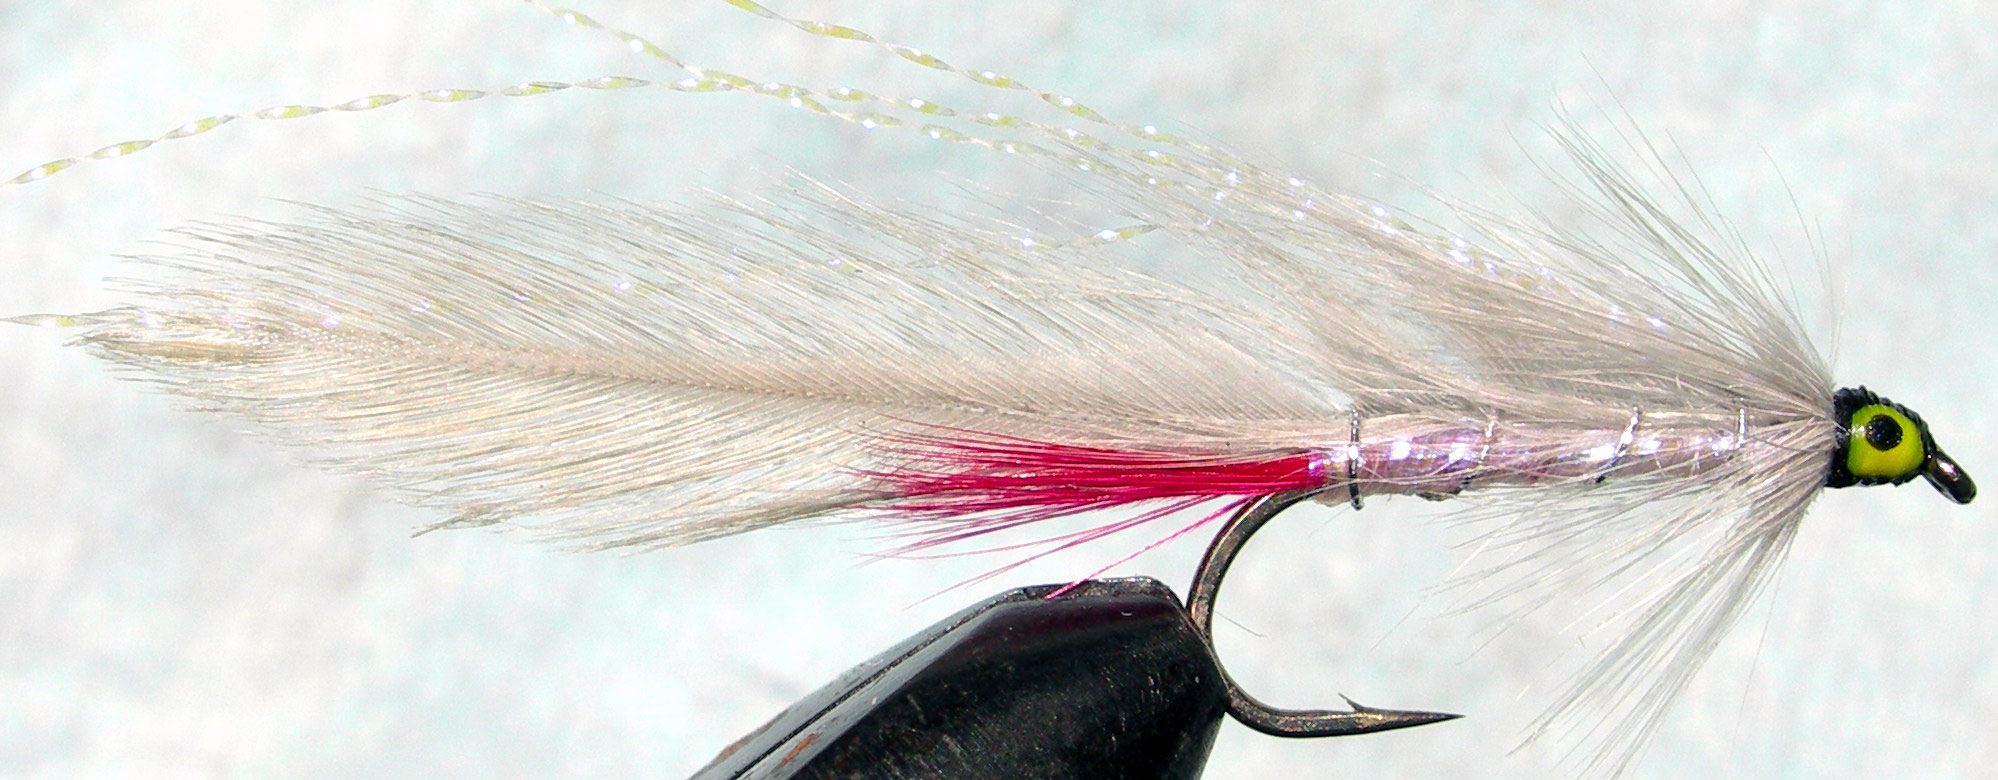 Gray Ghost pearl UV ghostwhite trout fly